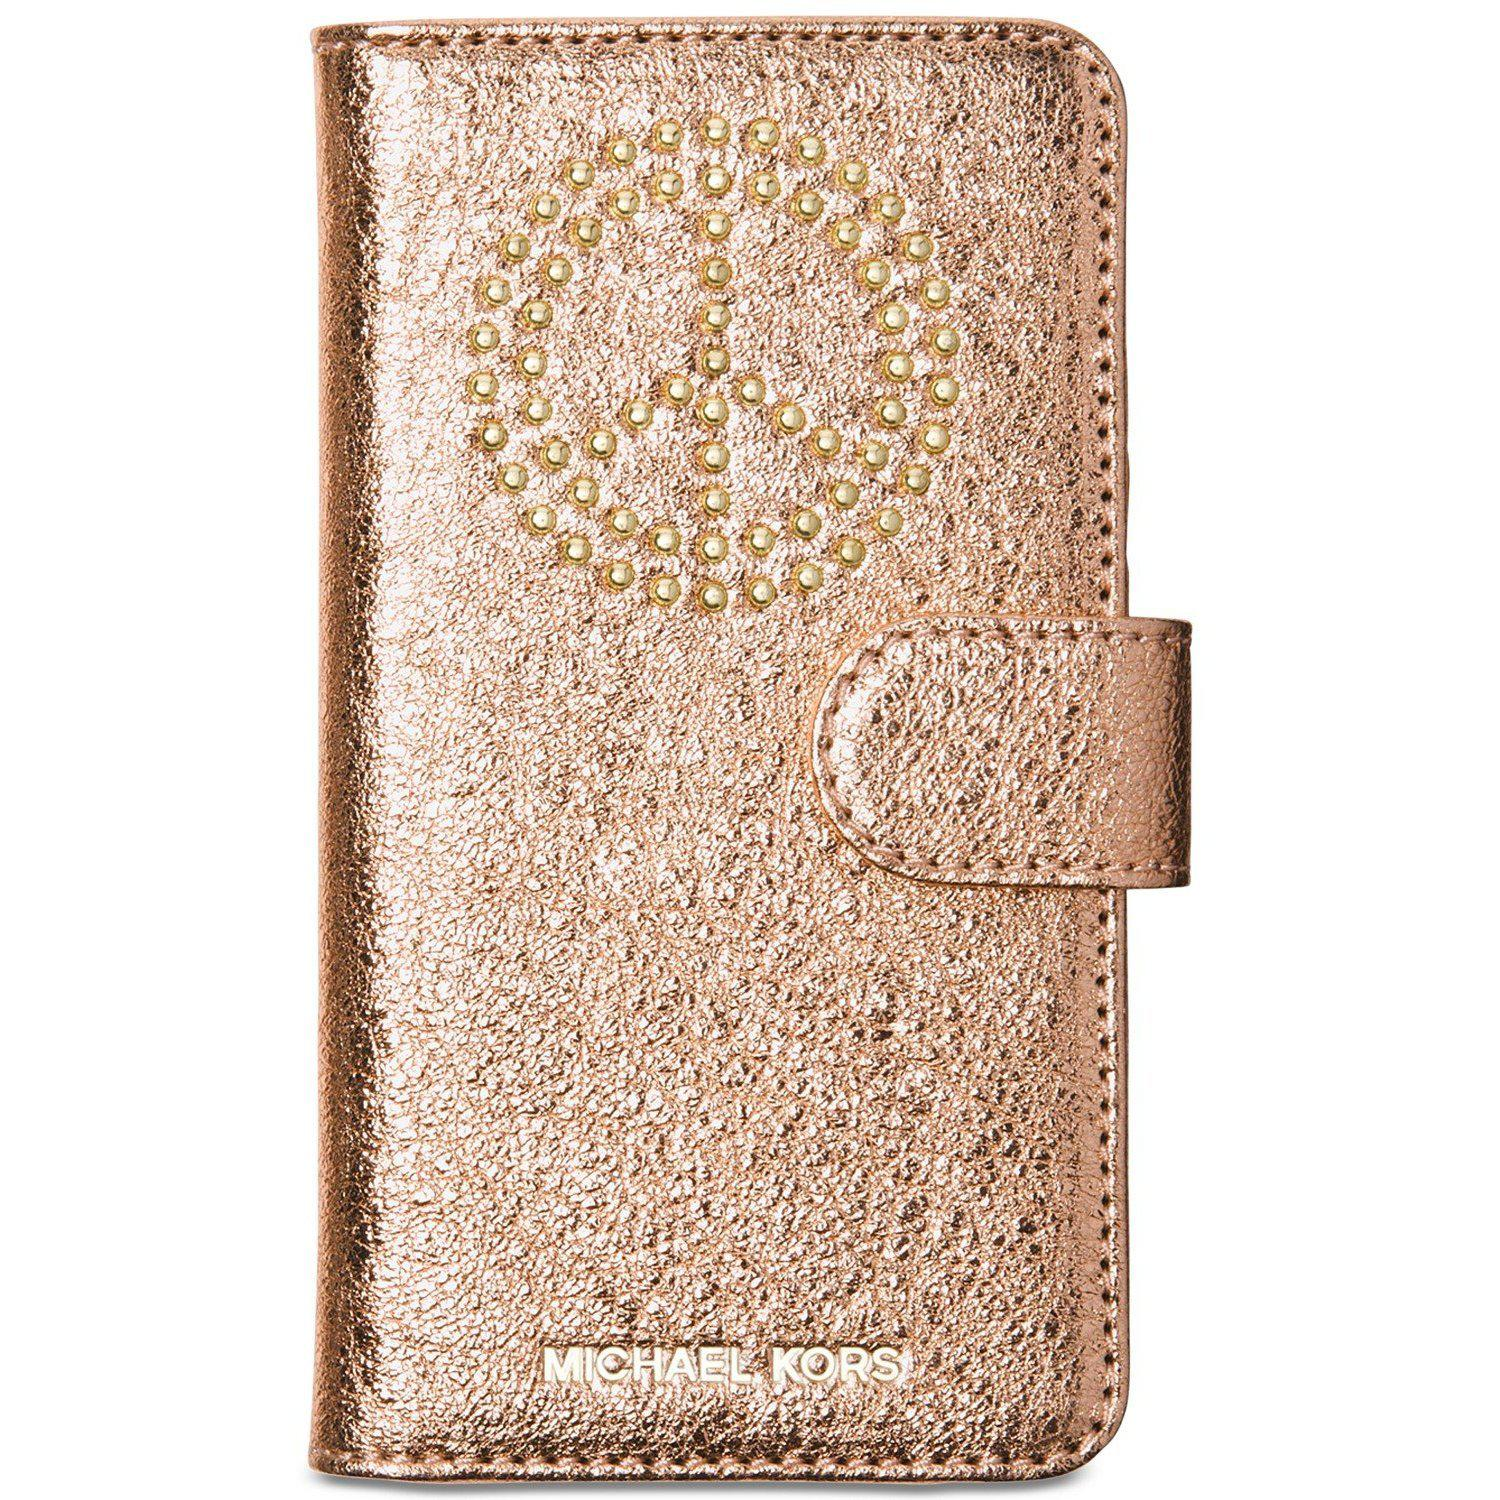 MICHAEL Michael Kors iPhone 7 Plus Folio Case-Handbags & Accessories-Michael Kors-ShoeShock